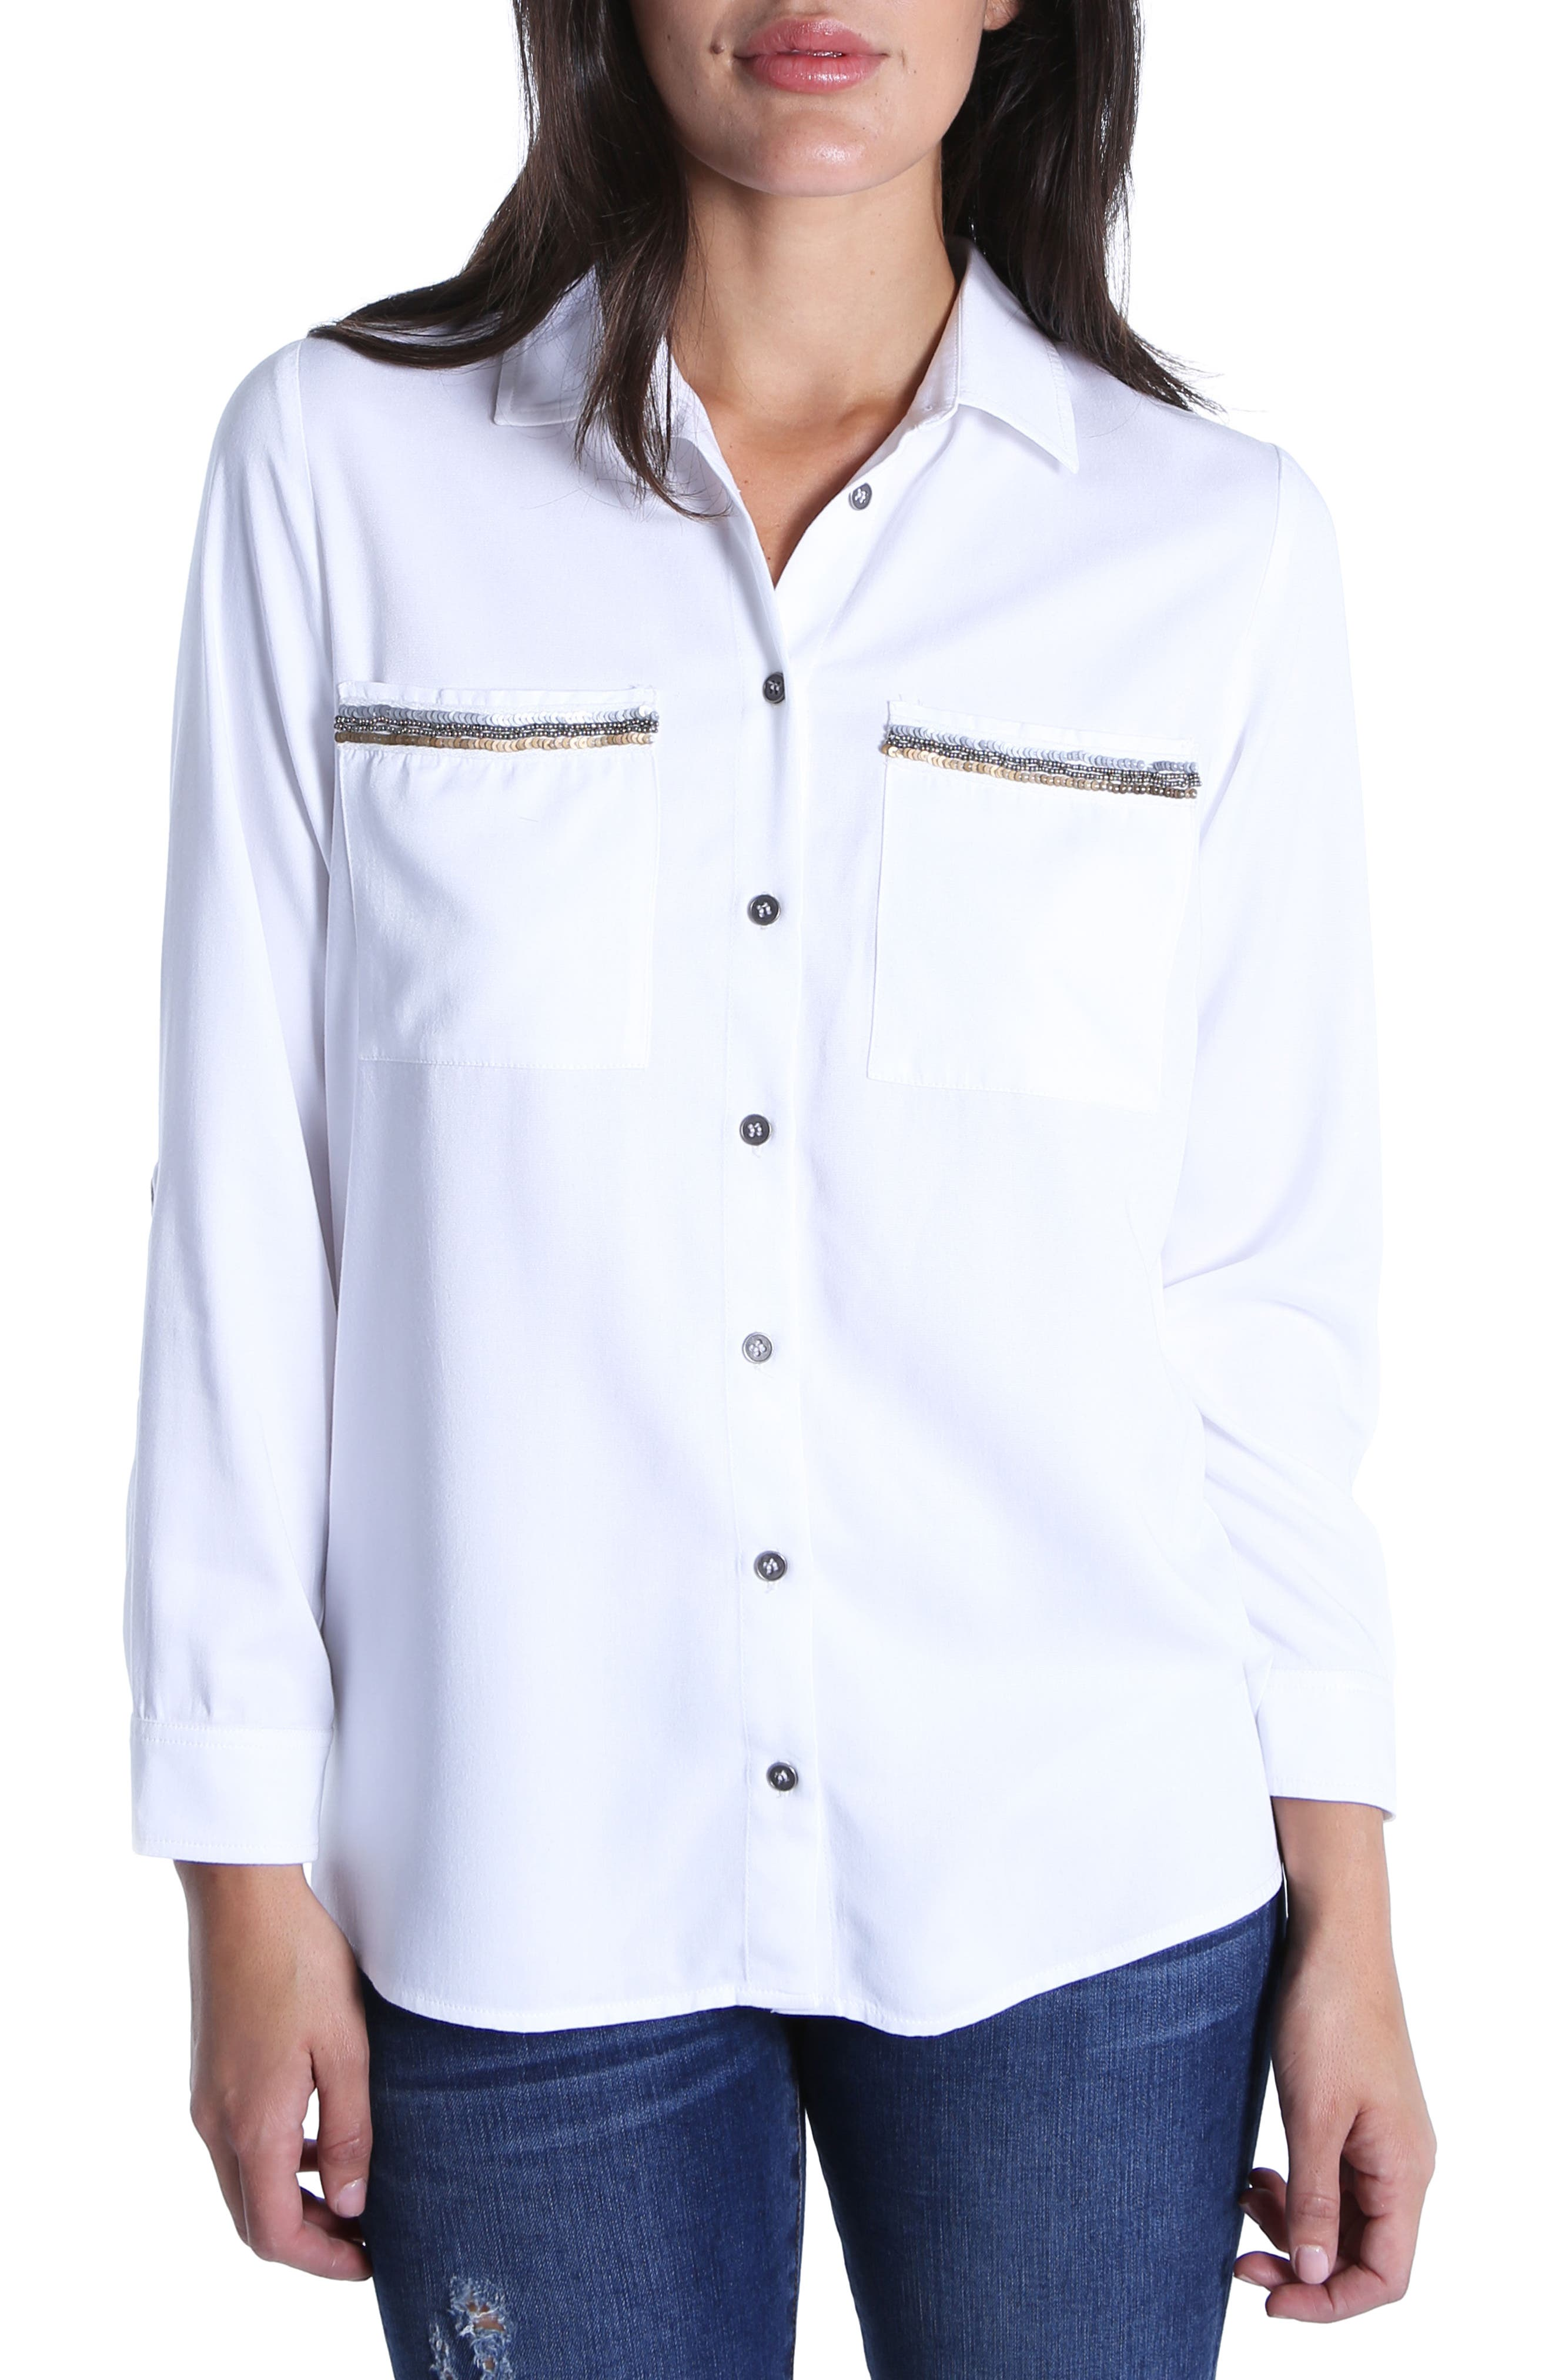 Danny Sequin Pocket Shirt,                             Main thumbnail 1, color,                             White